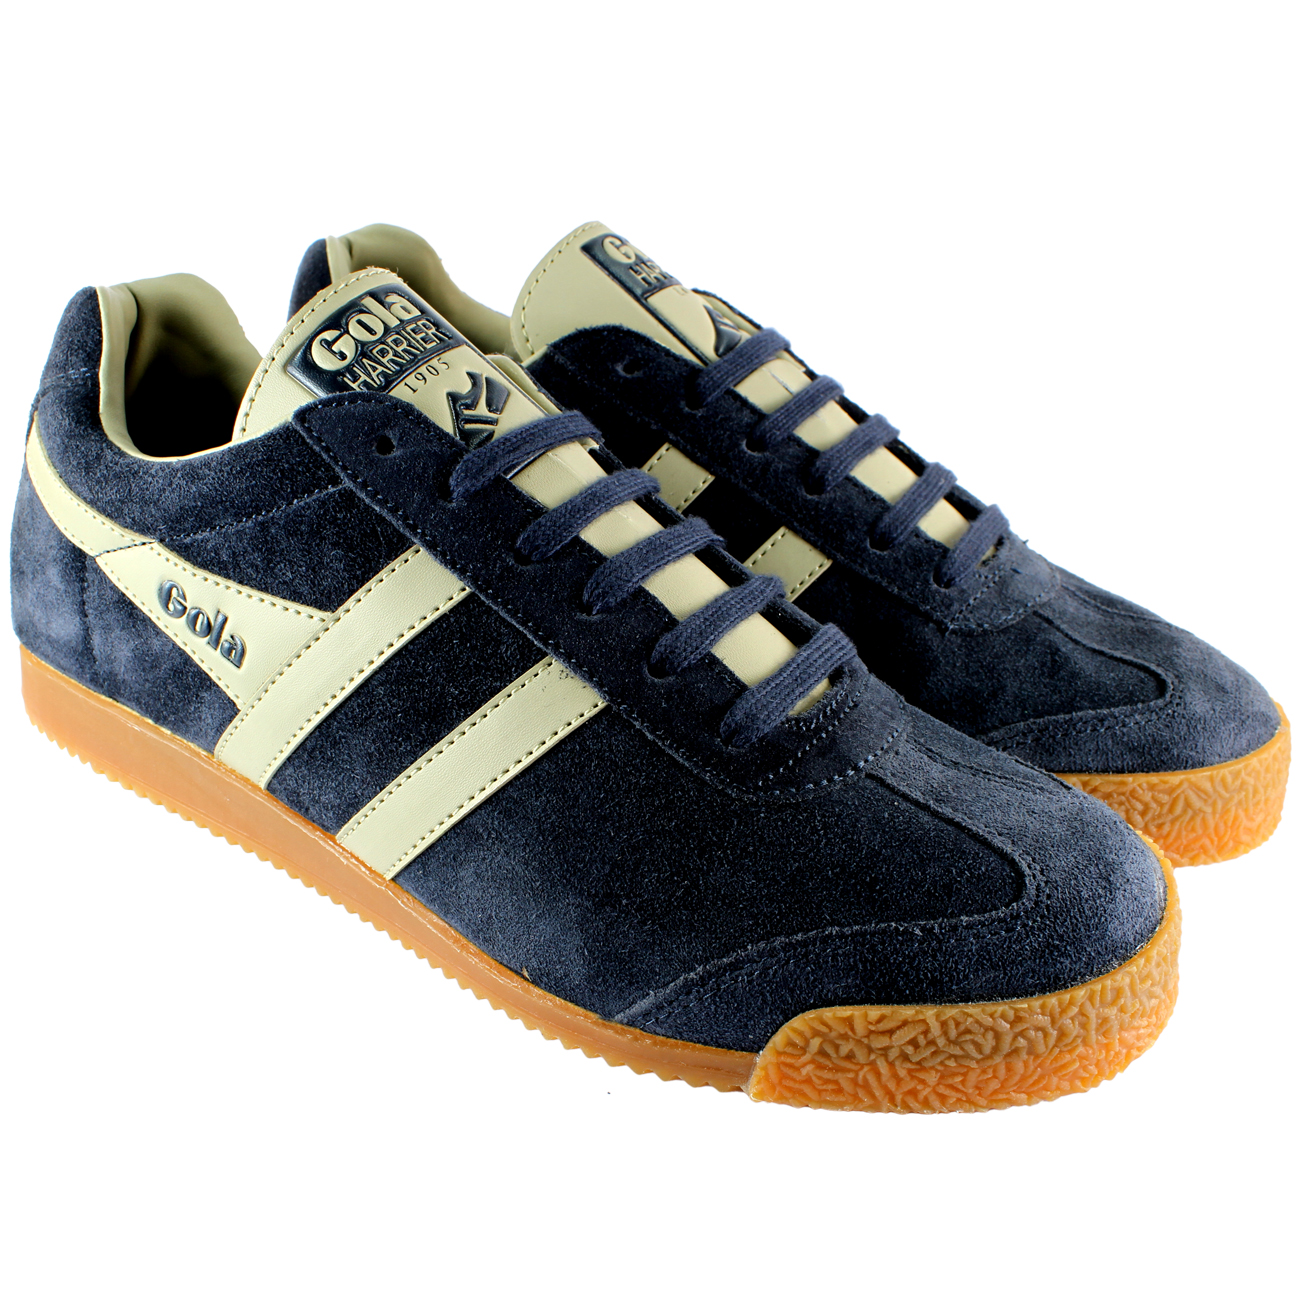 Gola Harrier Premium Flat Trainers